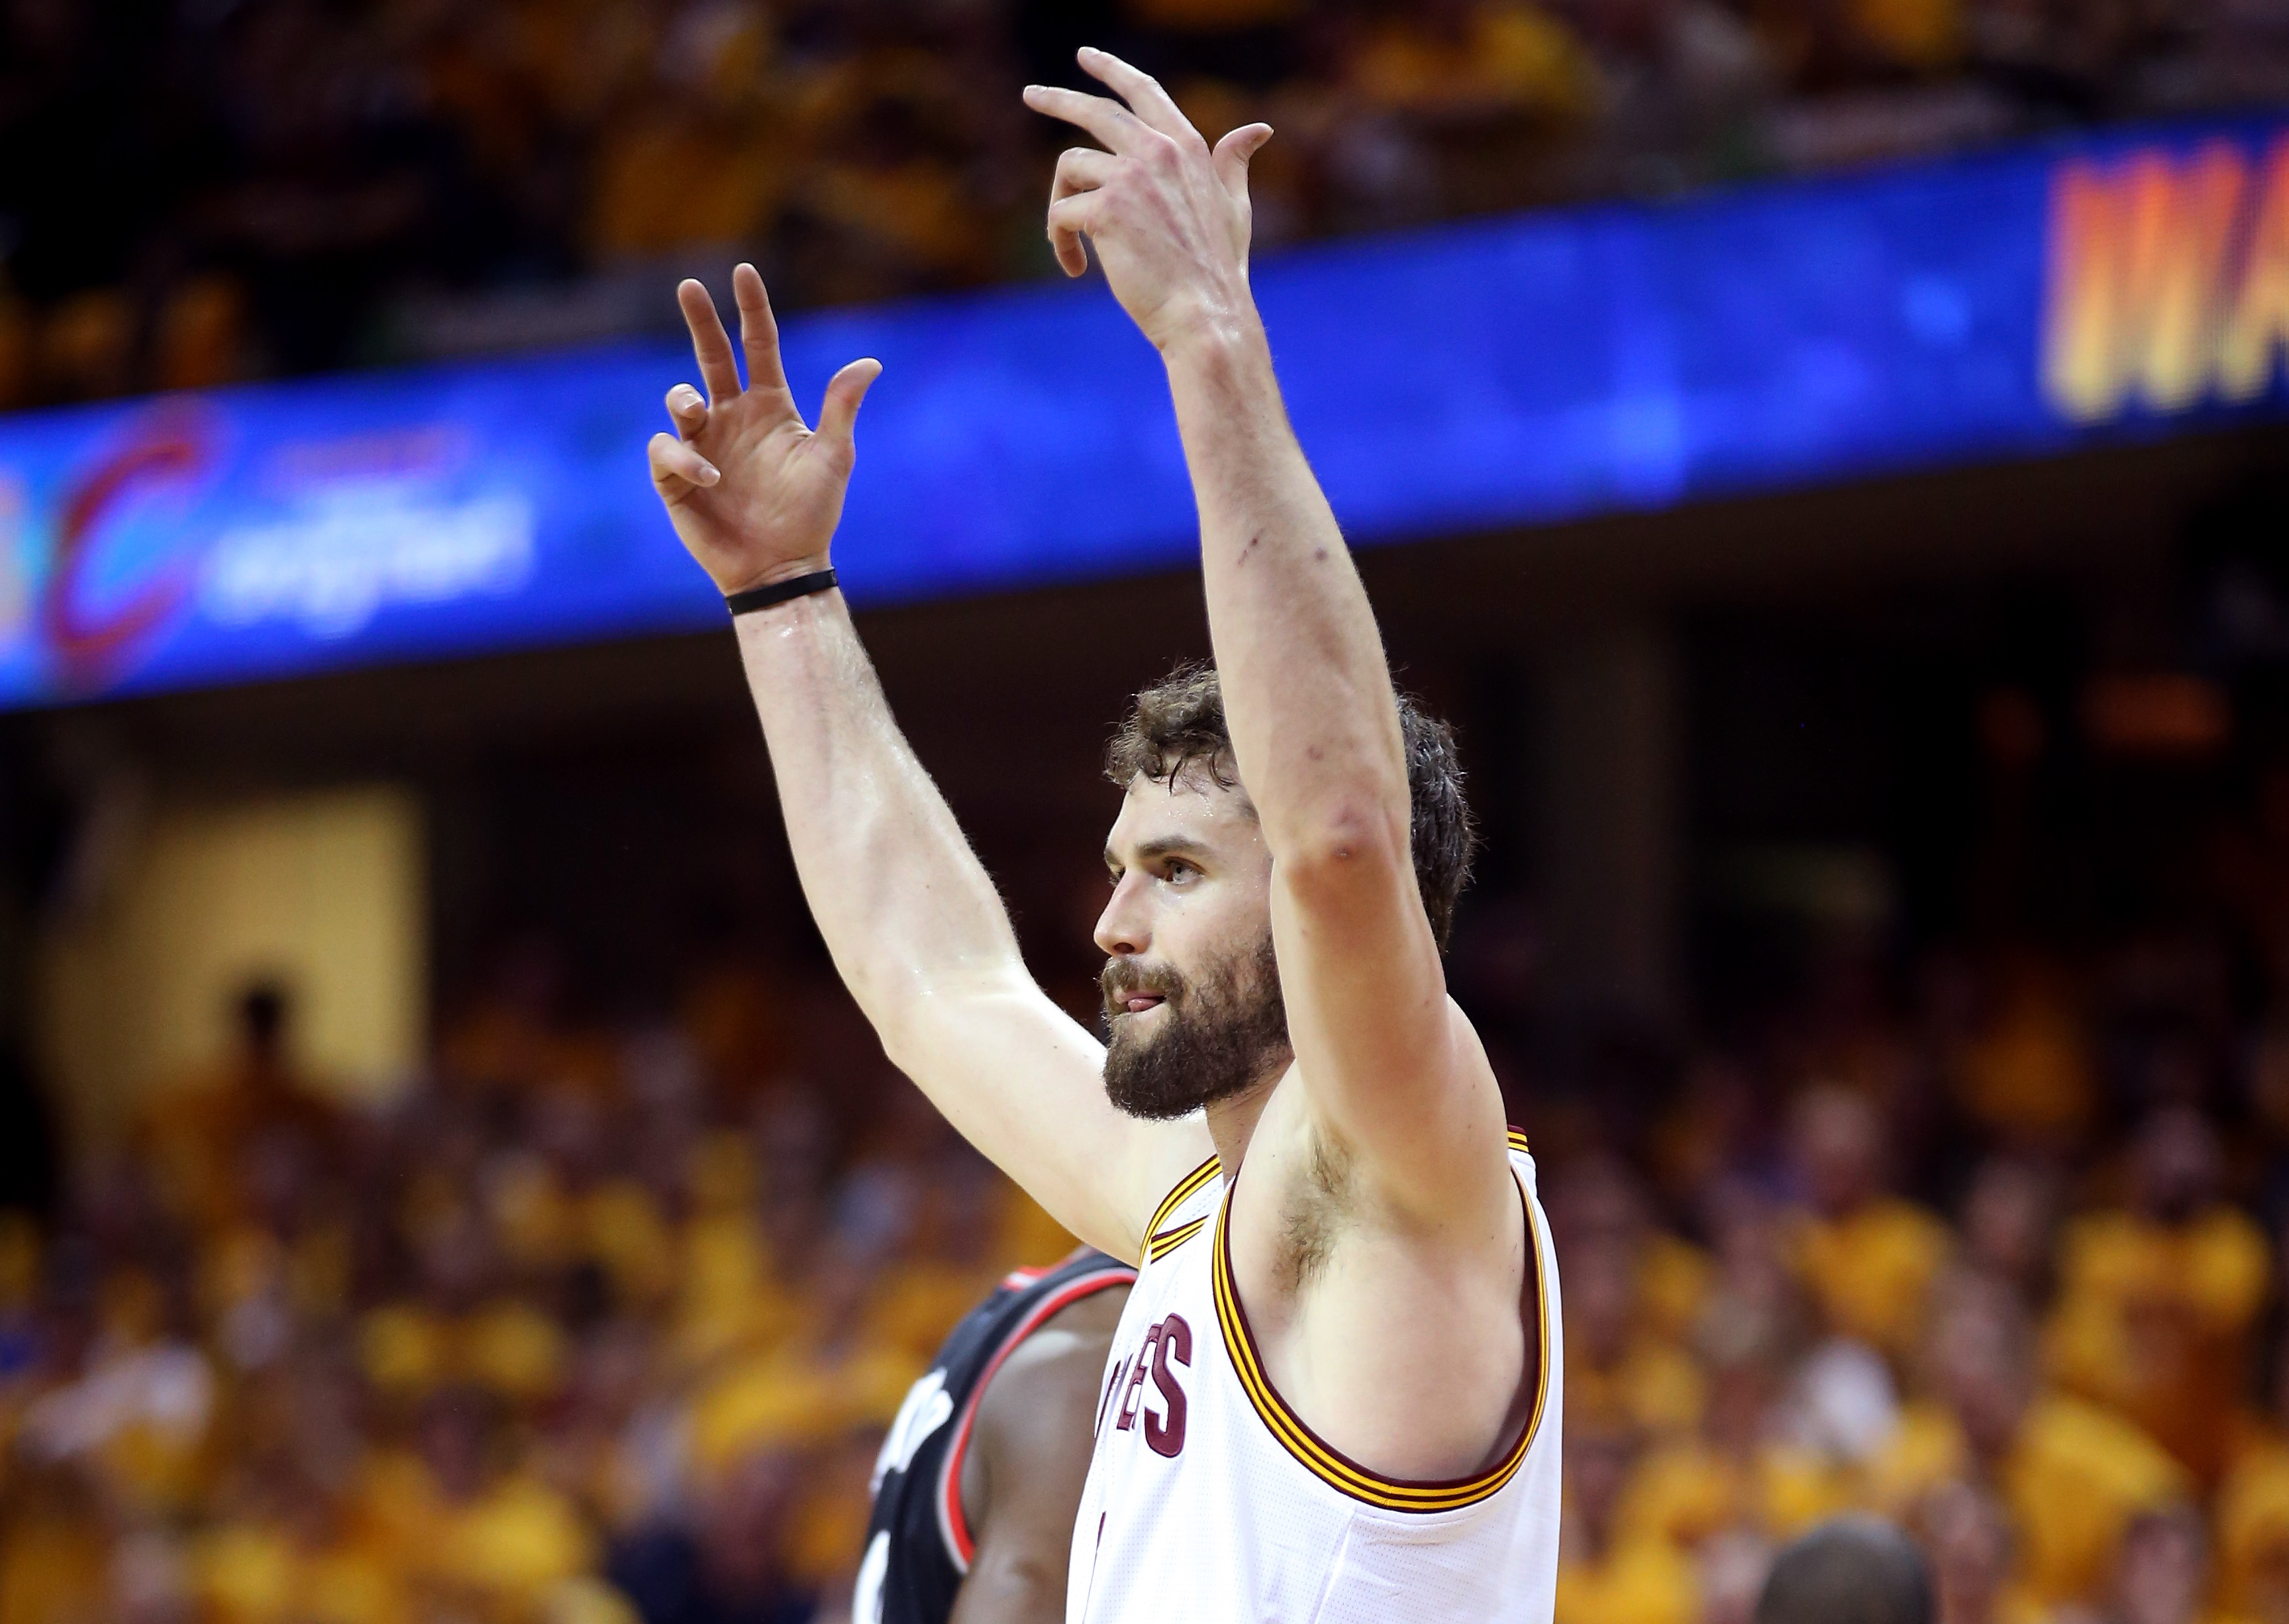 CLEVELAND, OH - MAY 25:  Kevin Love #0 of the Cleveland Cavaliers reacts in the first quarter against the Toronto Raptors in game five of the Eastern Conference Finals during the 2016 NBA Playoffs at Quicken Loans Arena on May 25, 2016 in Cleveland, Ohio.